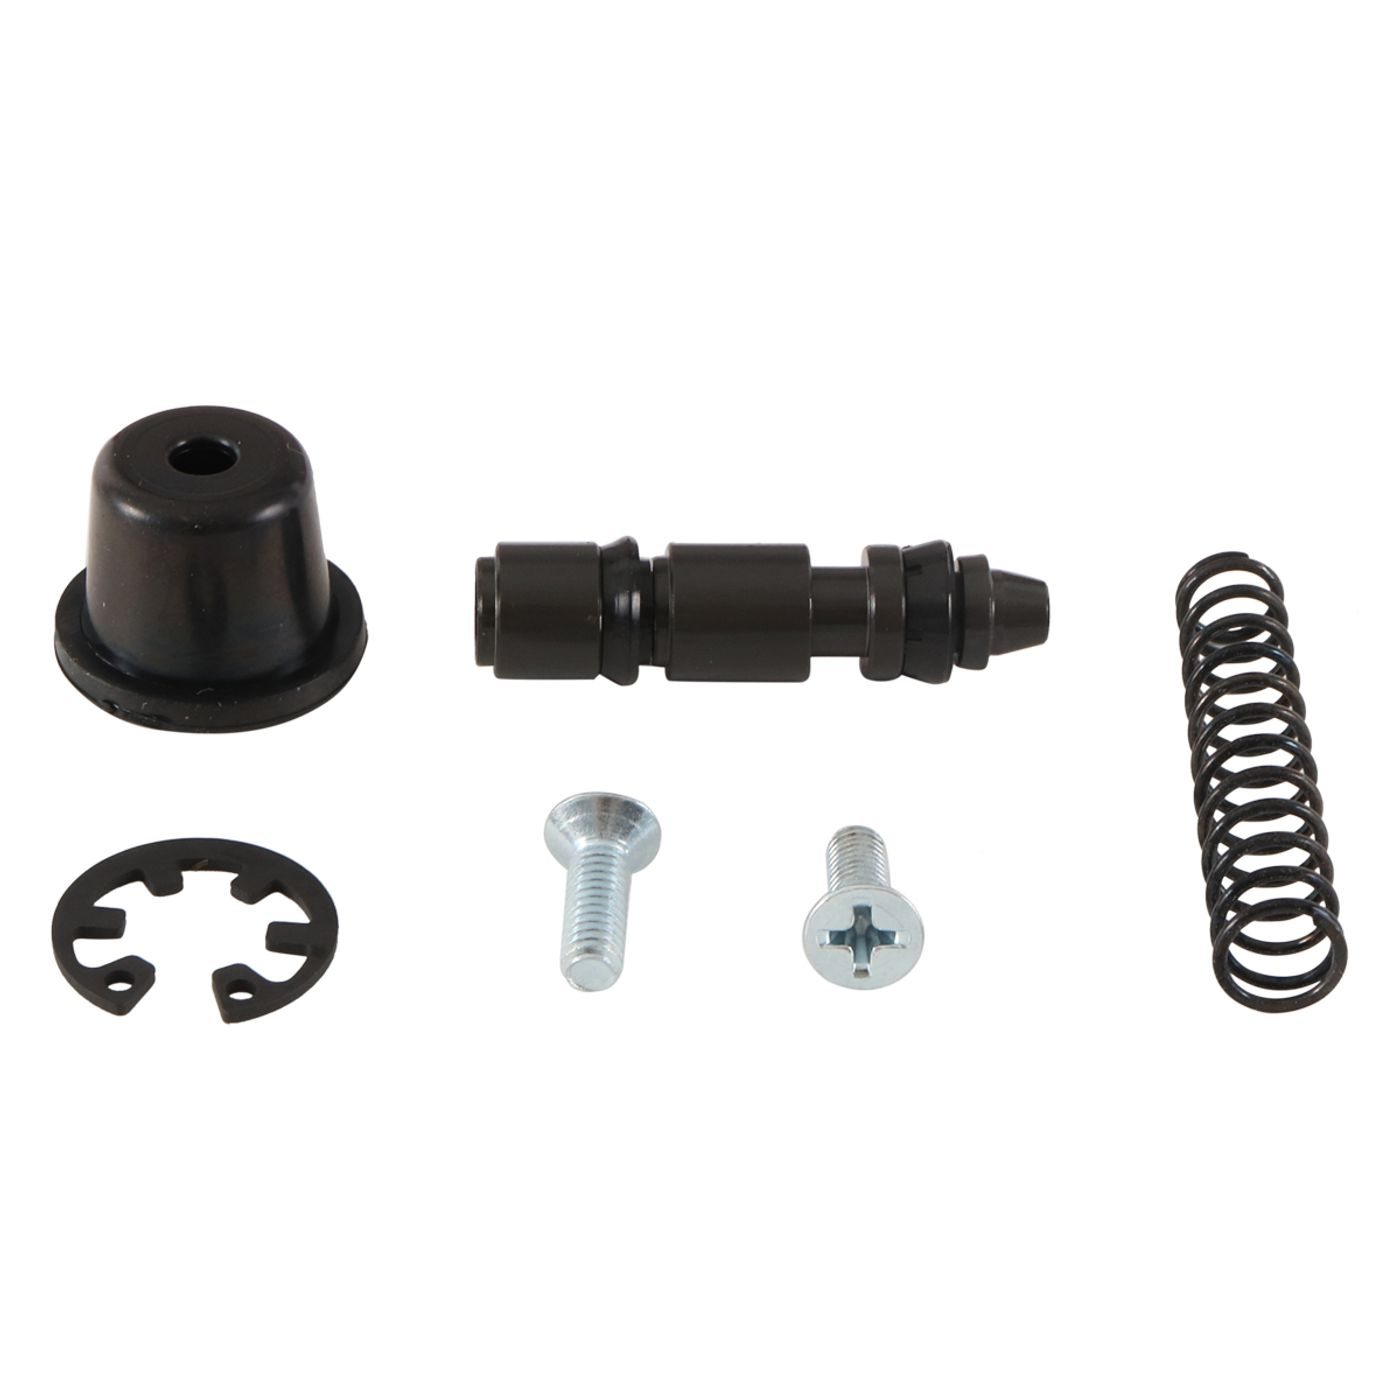 Wrp Clutch Master Cylinder Kit - WRP184006 image